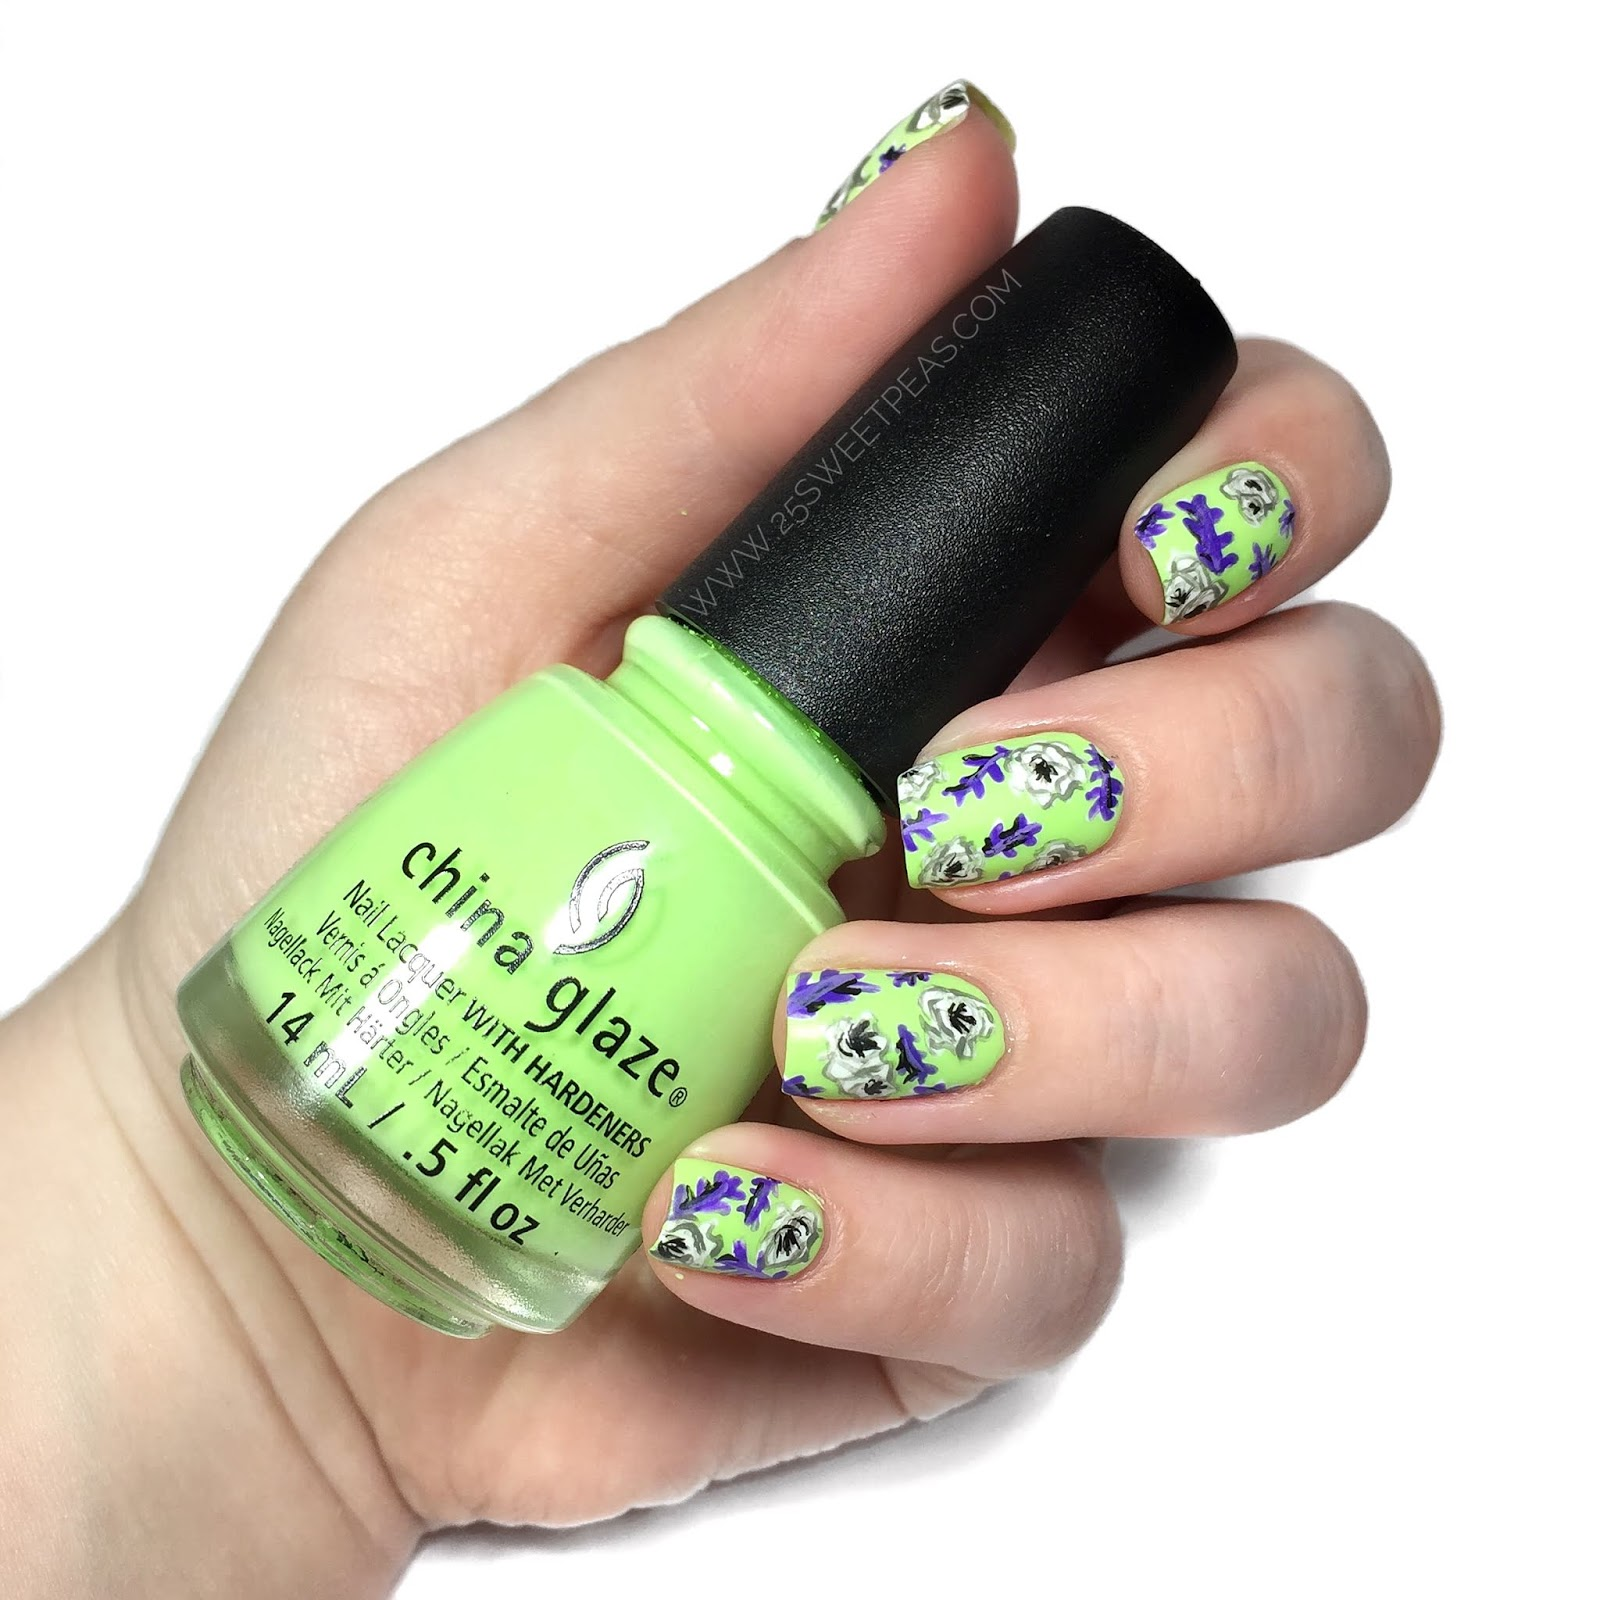 Nails Inspired by Royal Wedding Fashion - 25 Sweetpeas